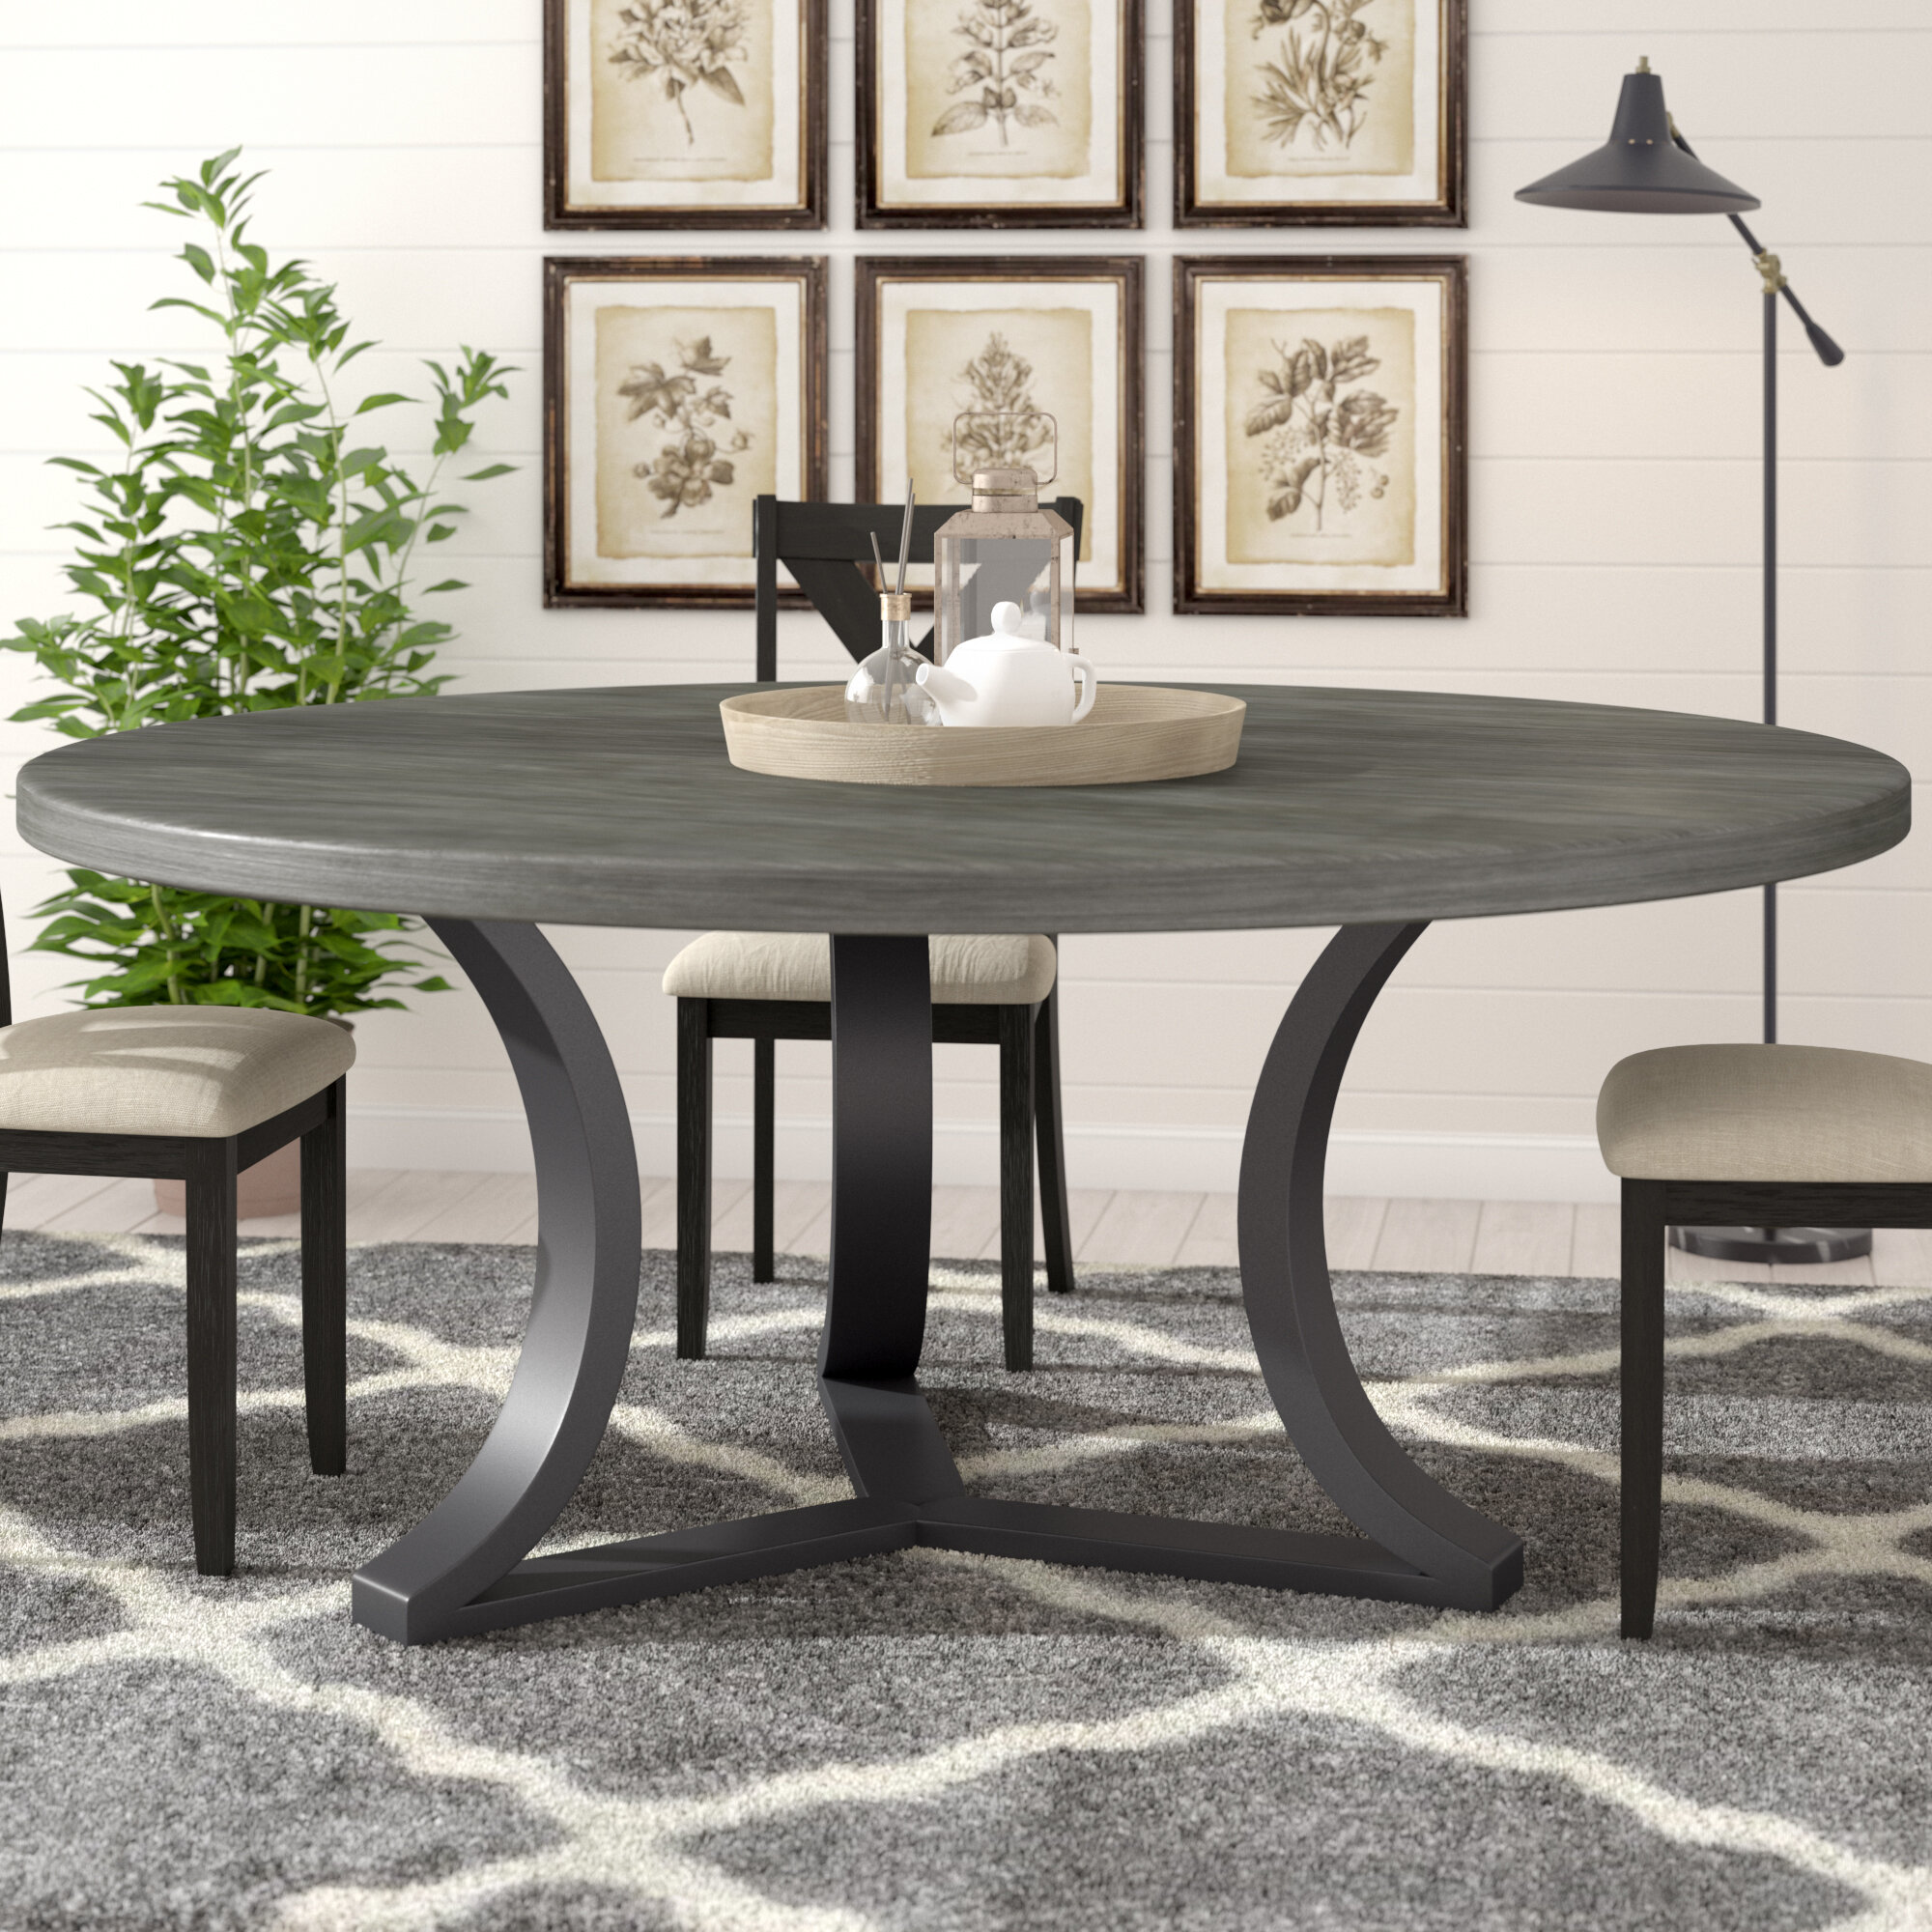 Swell Kitchen Table With Tile Top Youll Love In 2019 Wayfair Interior Design Ideas Inesswwsoteloinfo